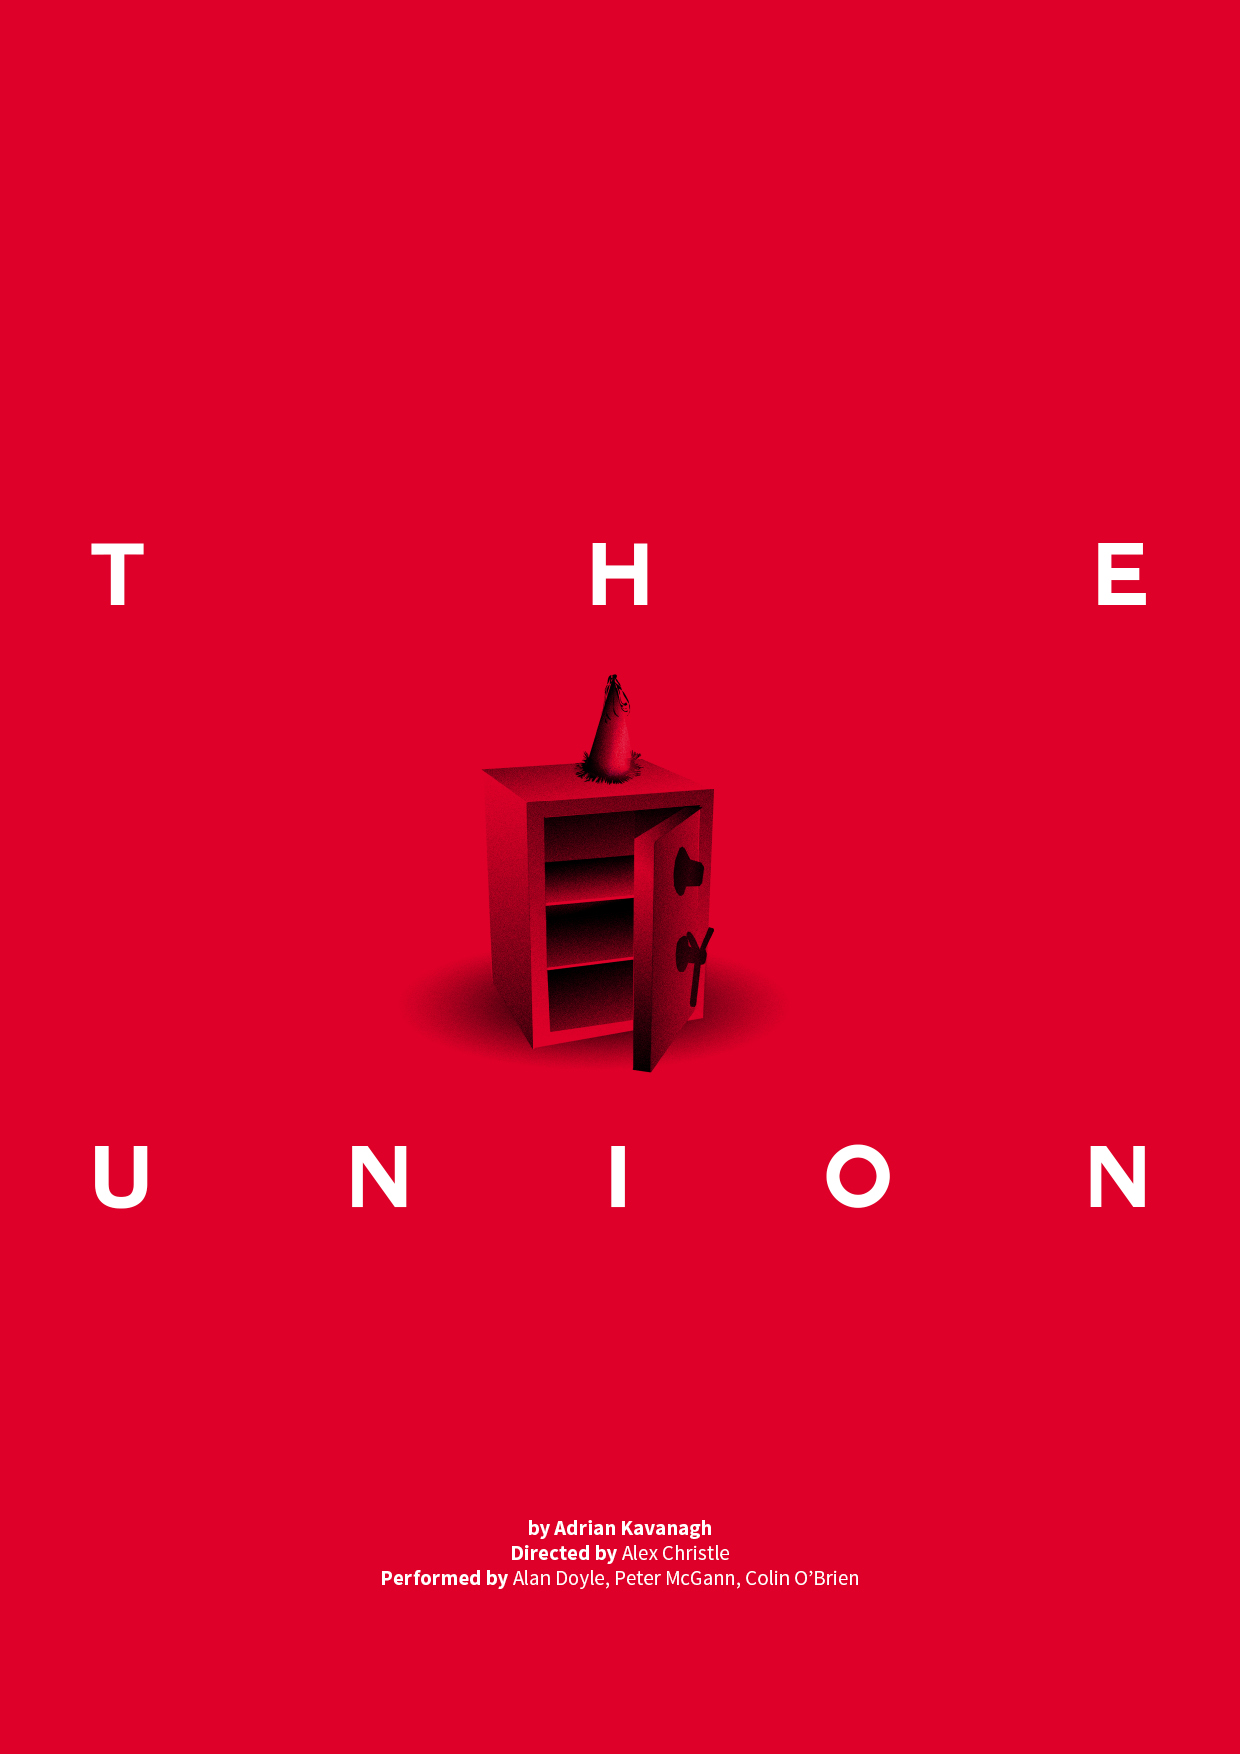 Little Deviation #3: The Union